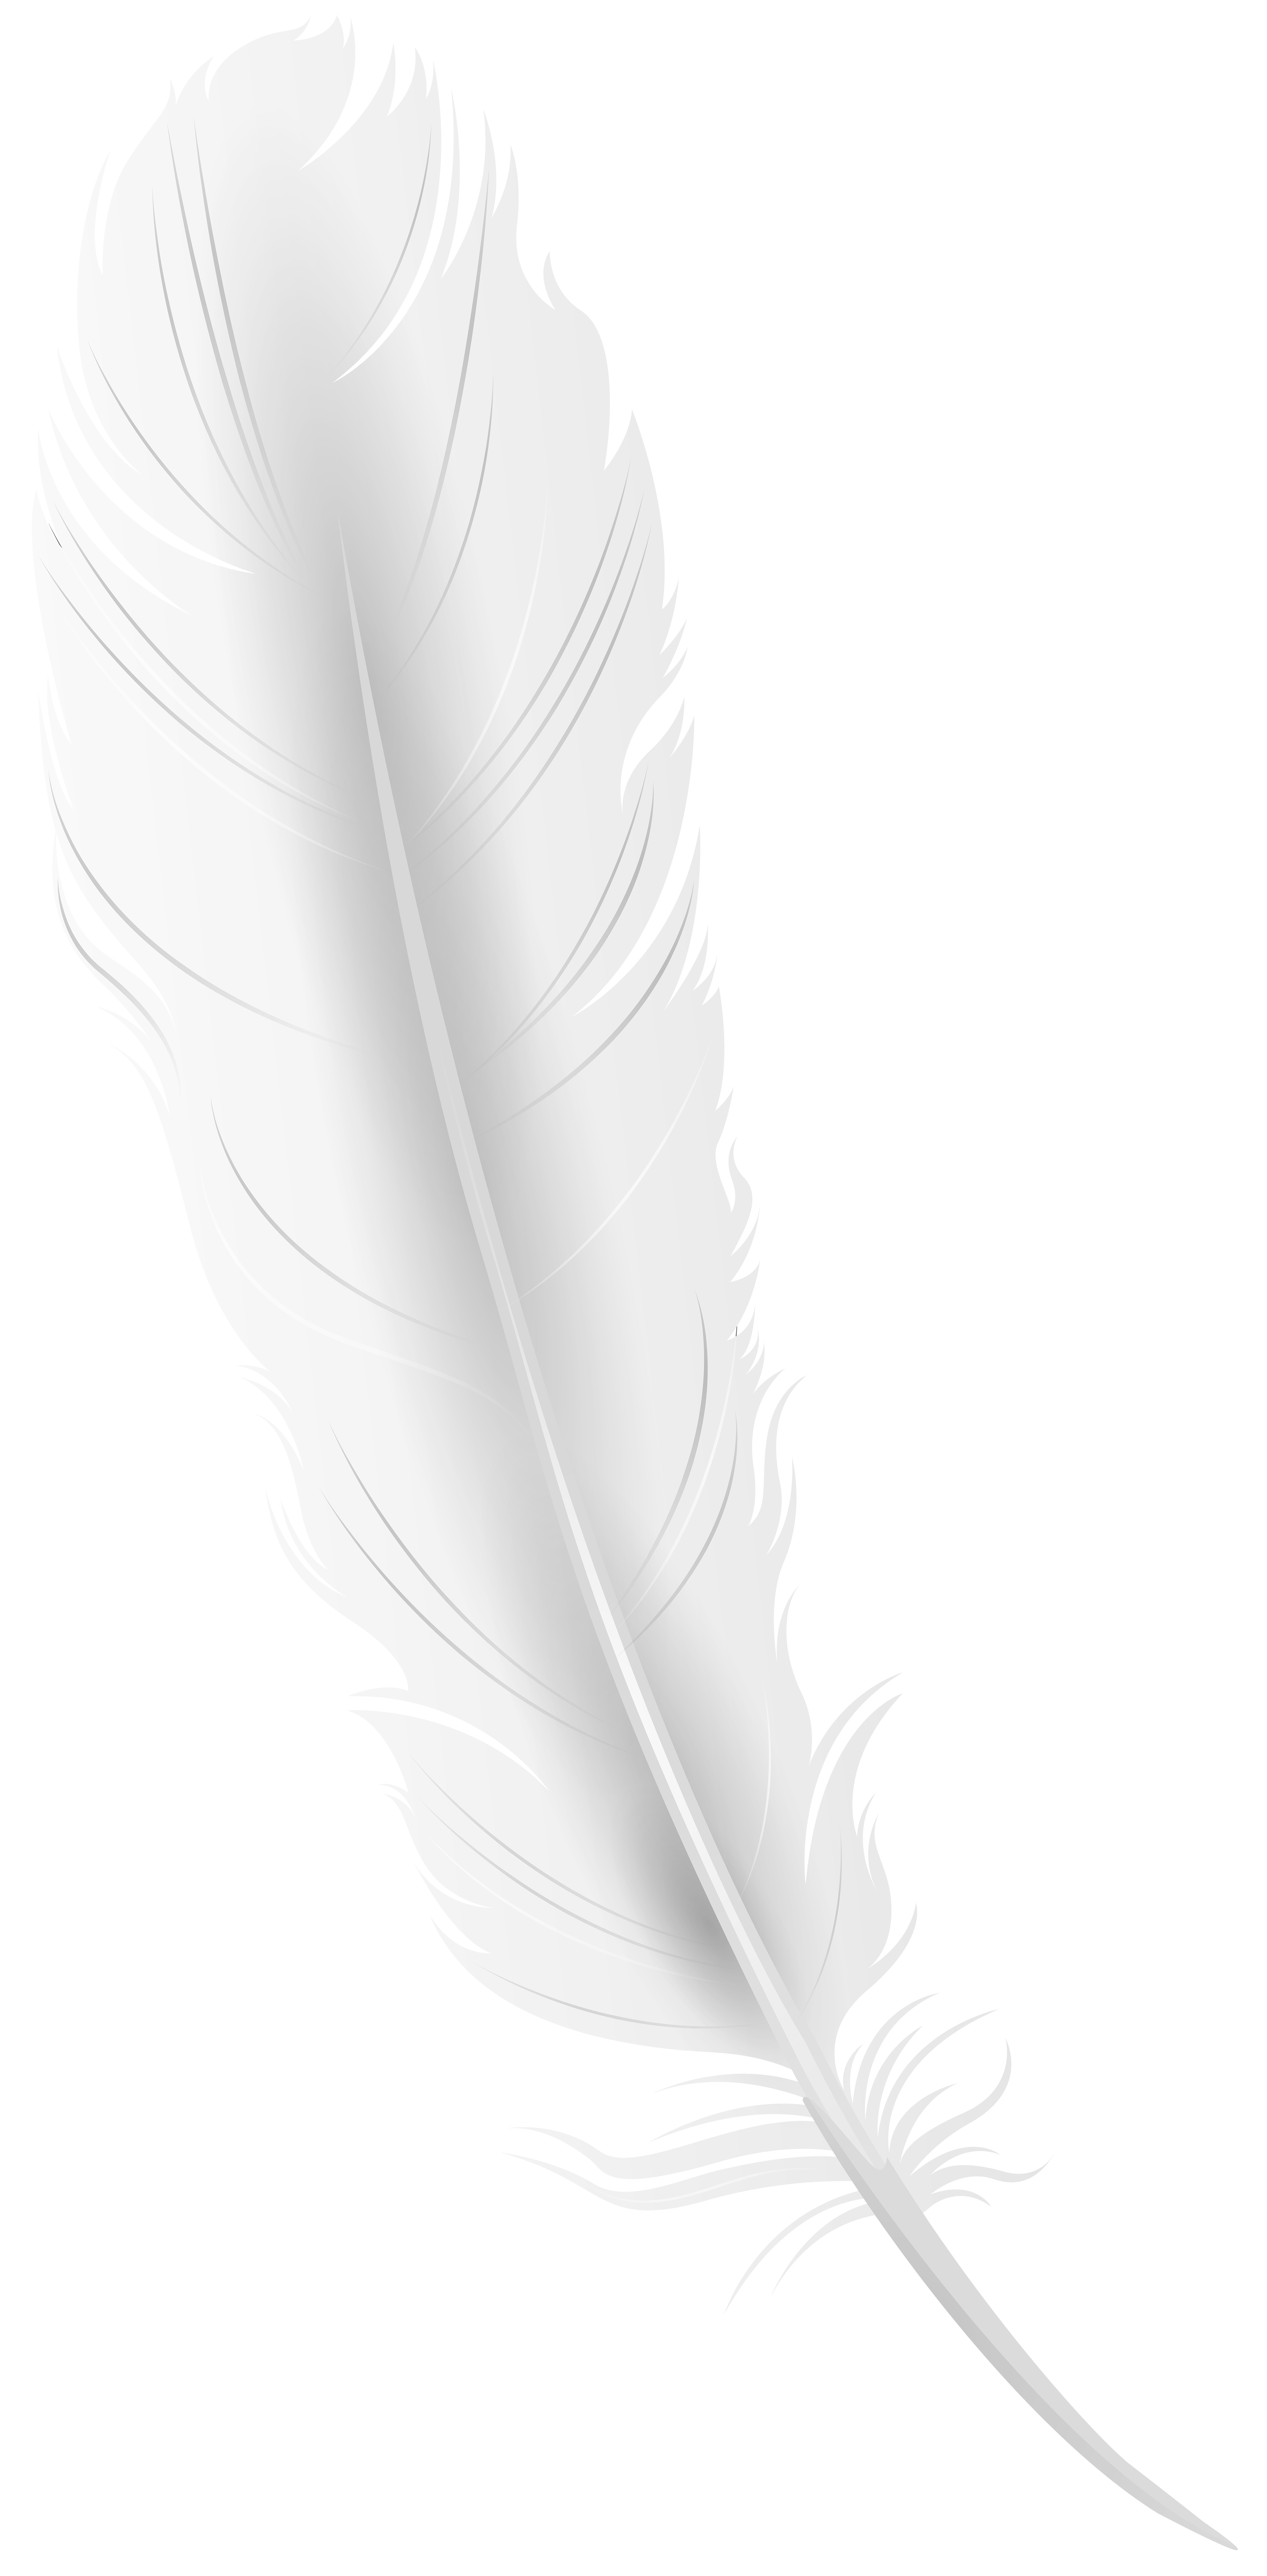 White Feather Png Clip Art Image Gallery Yopriceville High Quality Images And Transparent Png Free Clipart Clip Art White Feathers Art Images